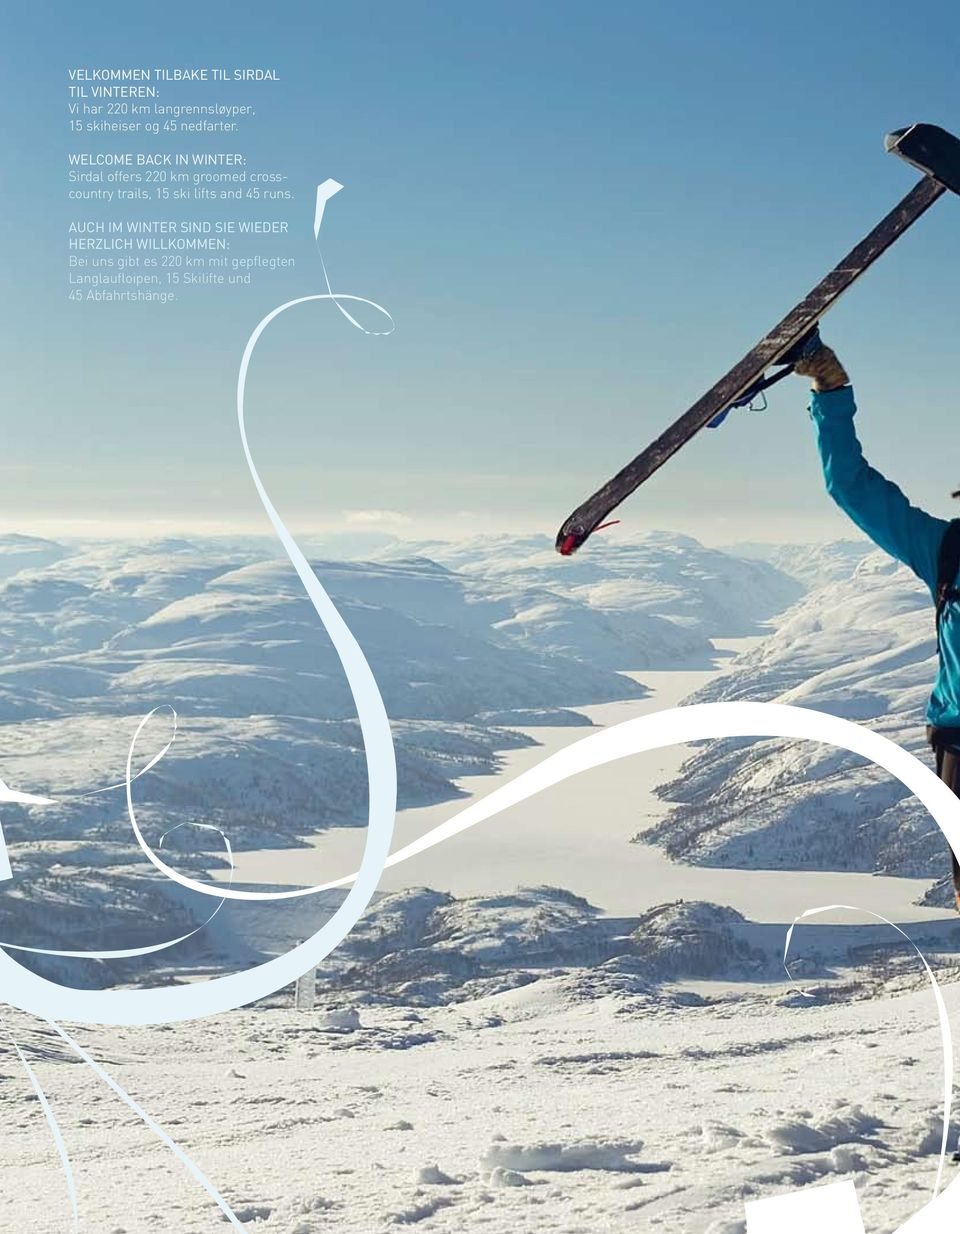 Welcome back in winter: Sirdal offers 220 km groomed crosscountry trails, 15 ski